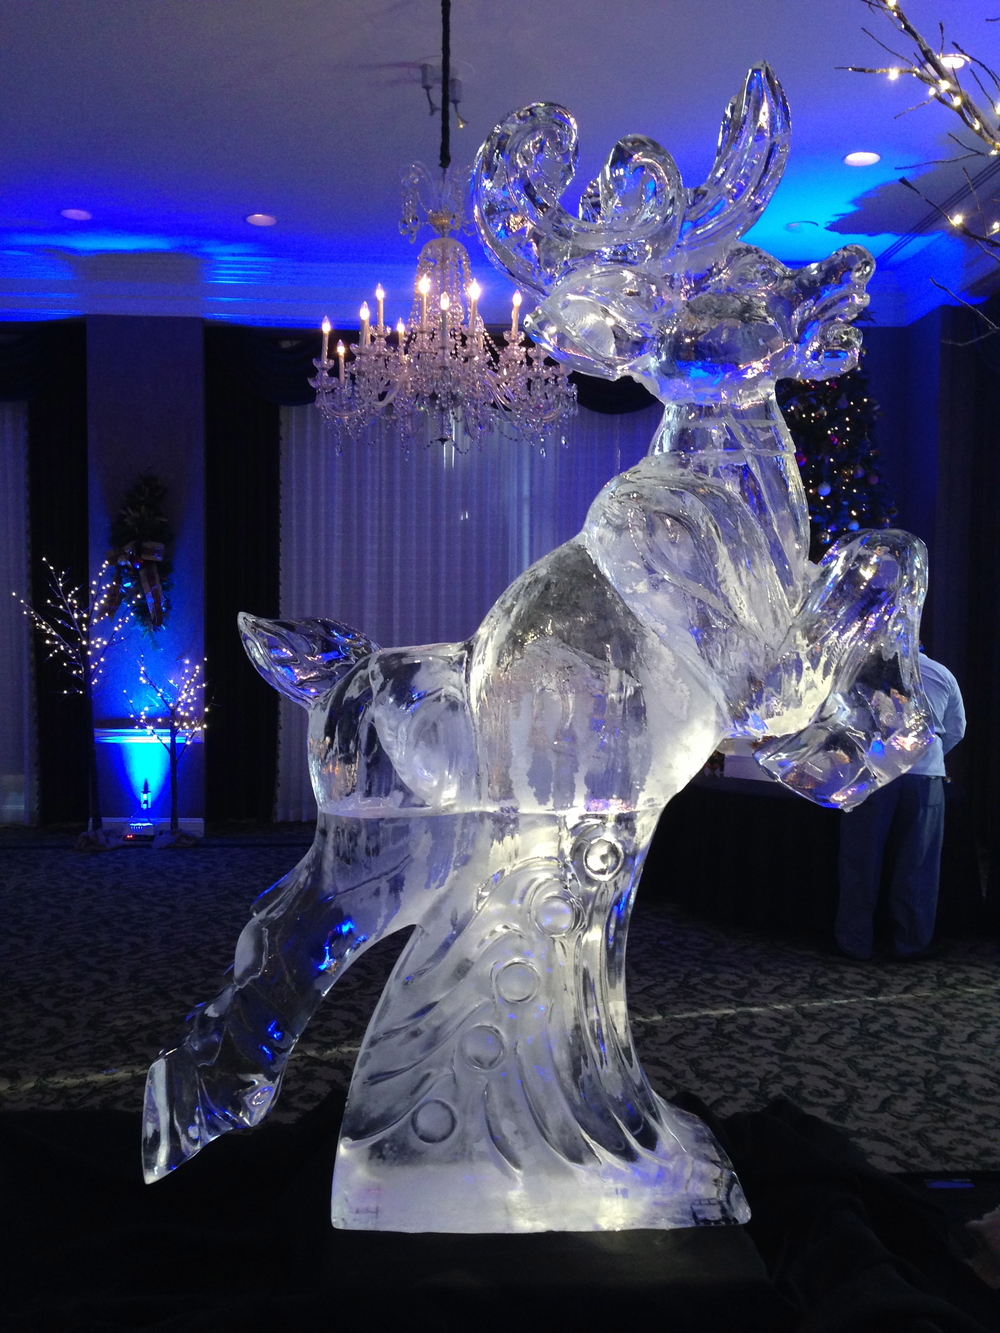 6) Jumping Reindeer Ice Sculpture